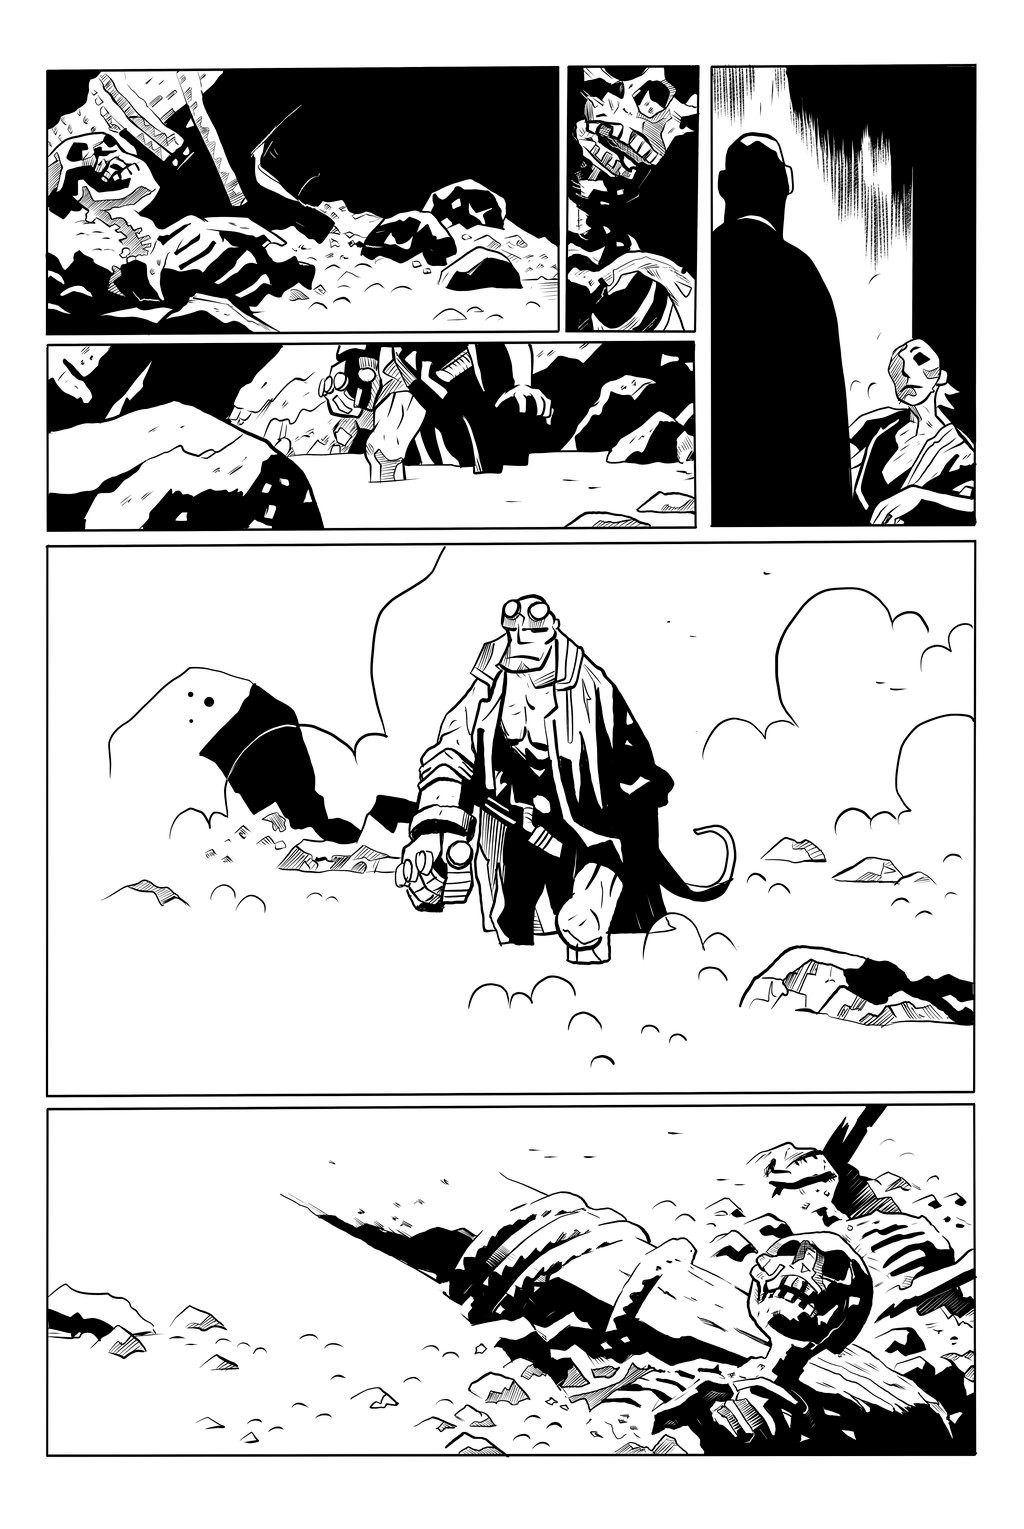 Hellboy - The Island Sample Page 4 of 5